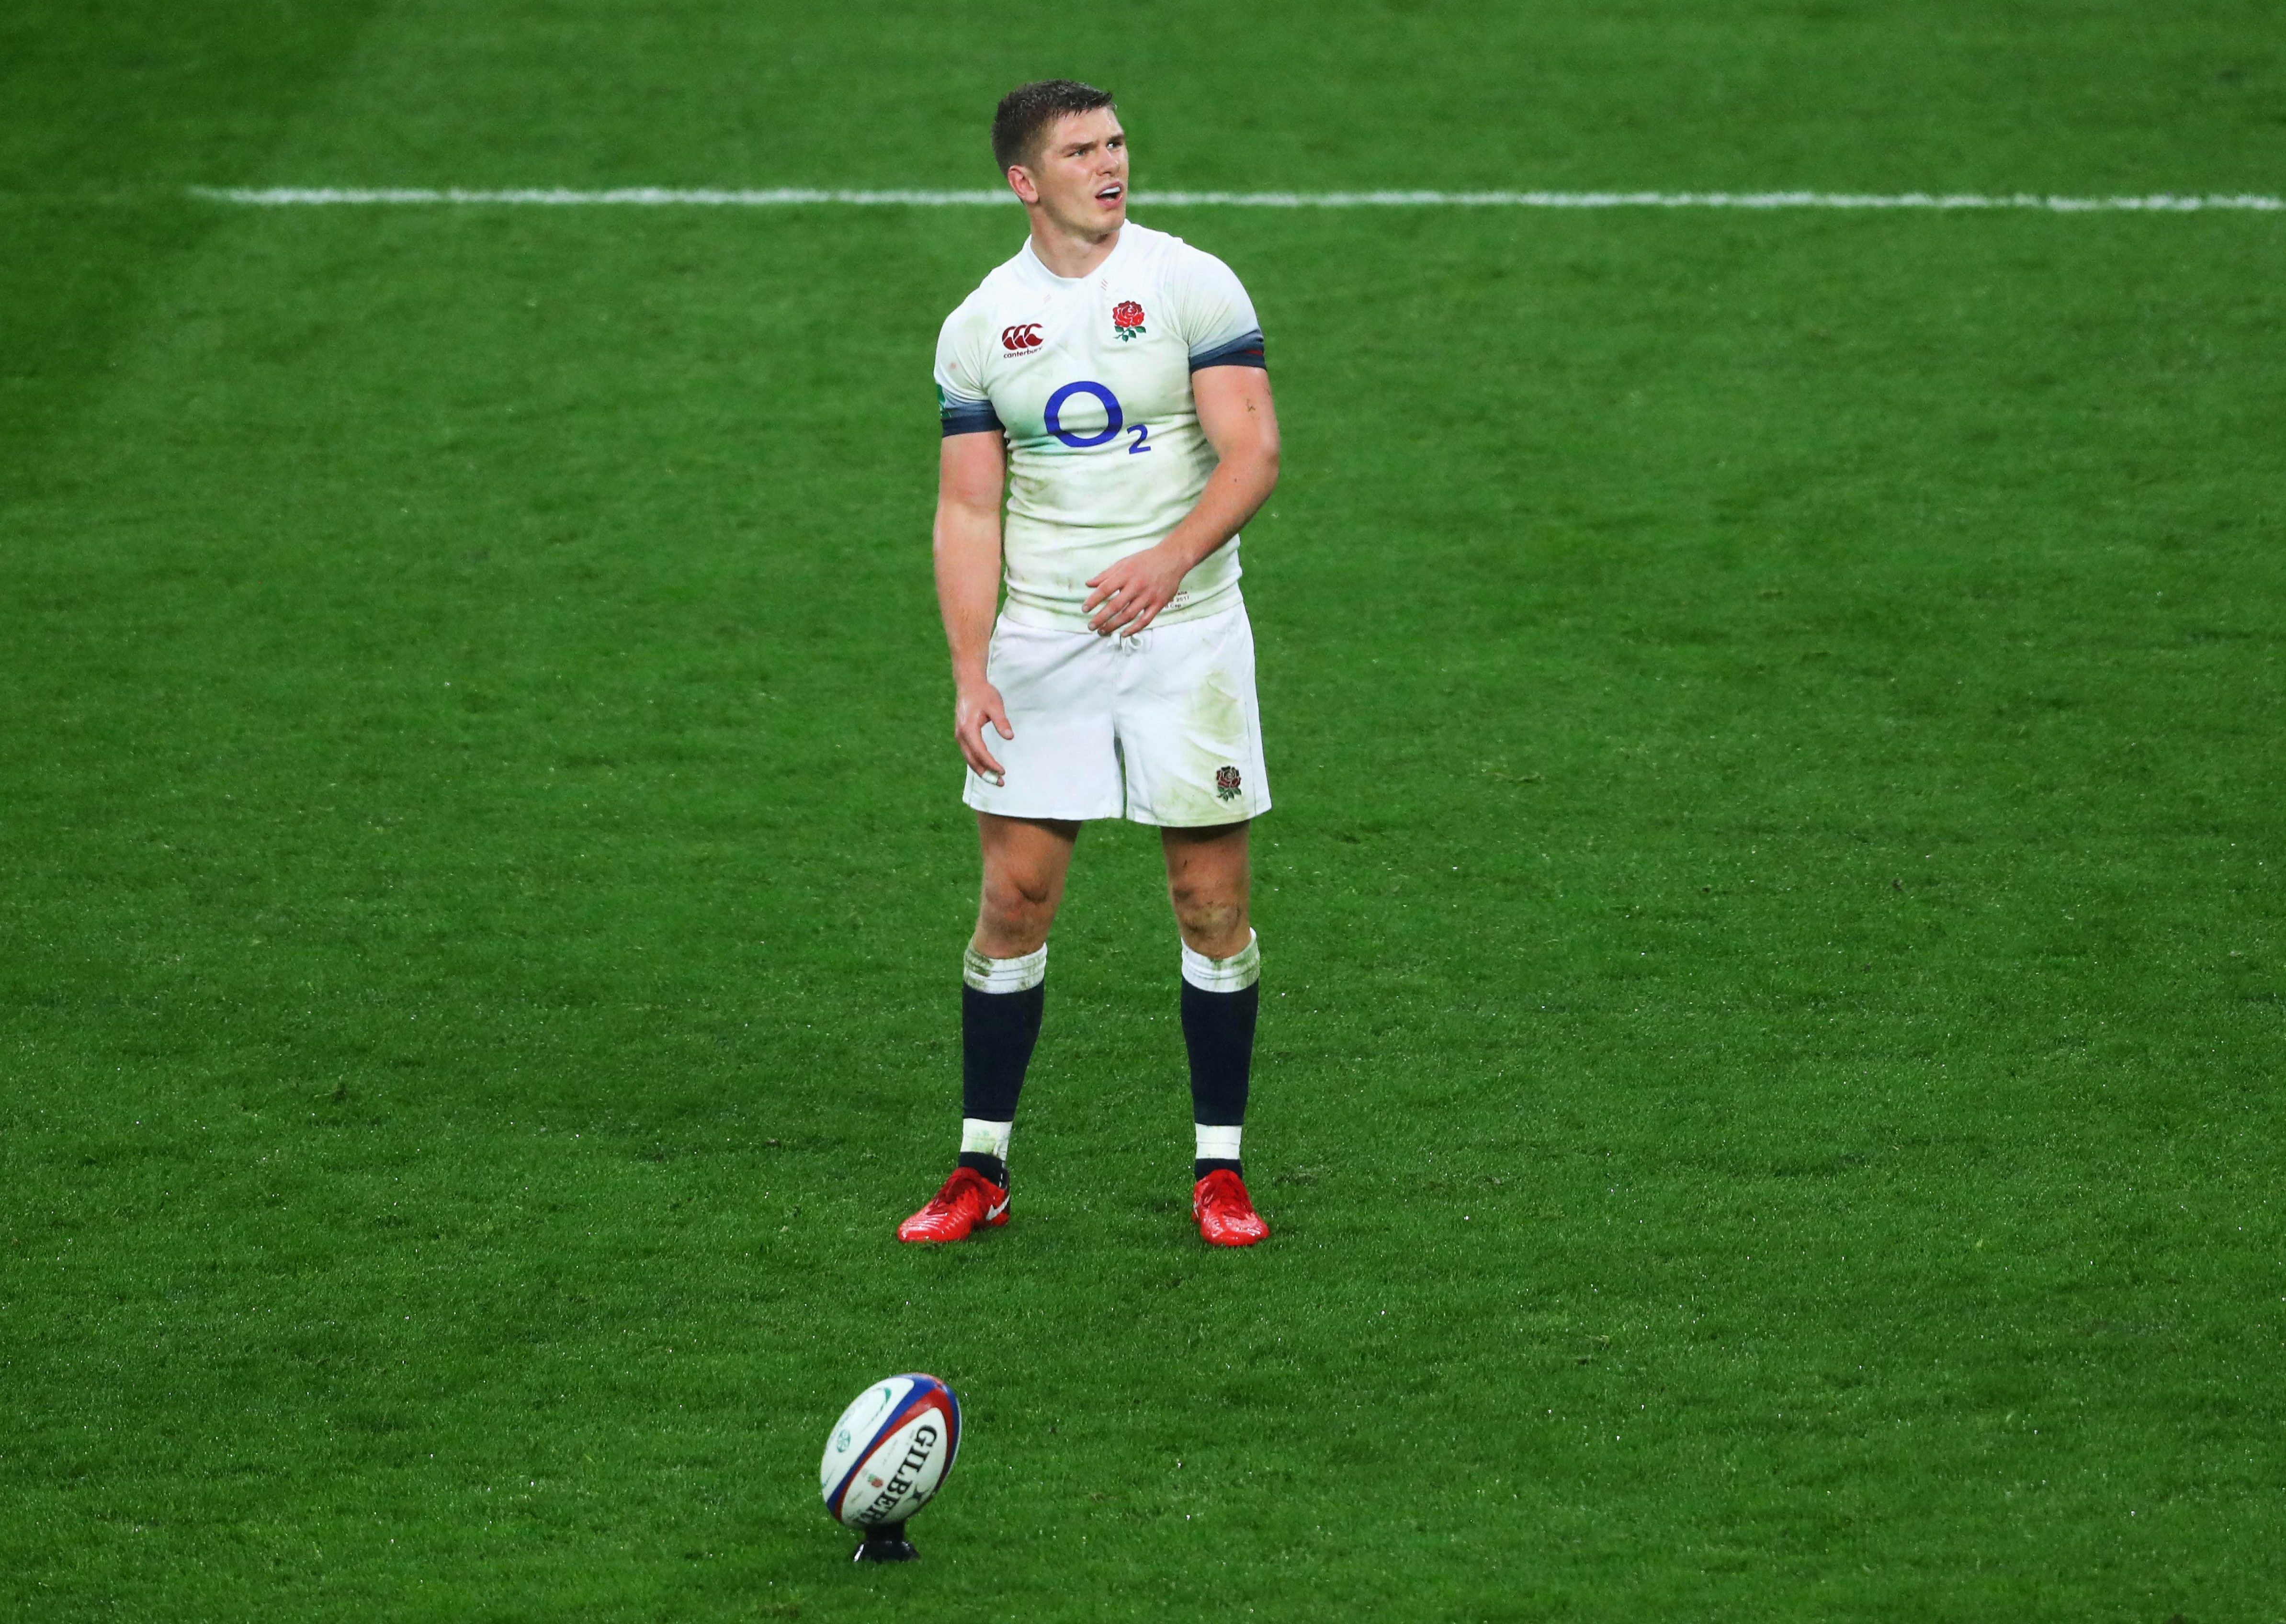 After a strong performance against Italy, Owen Farrell scored a conversion against Wales